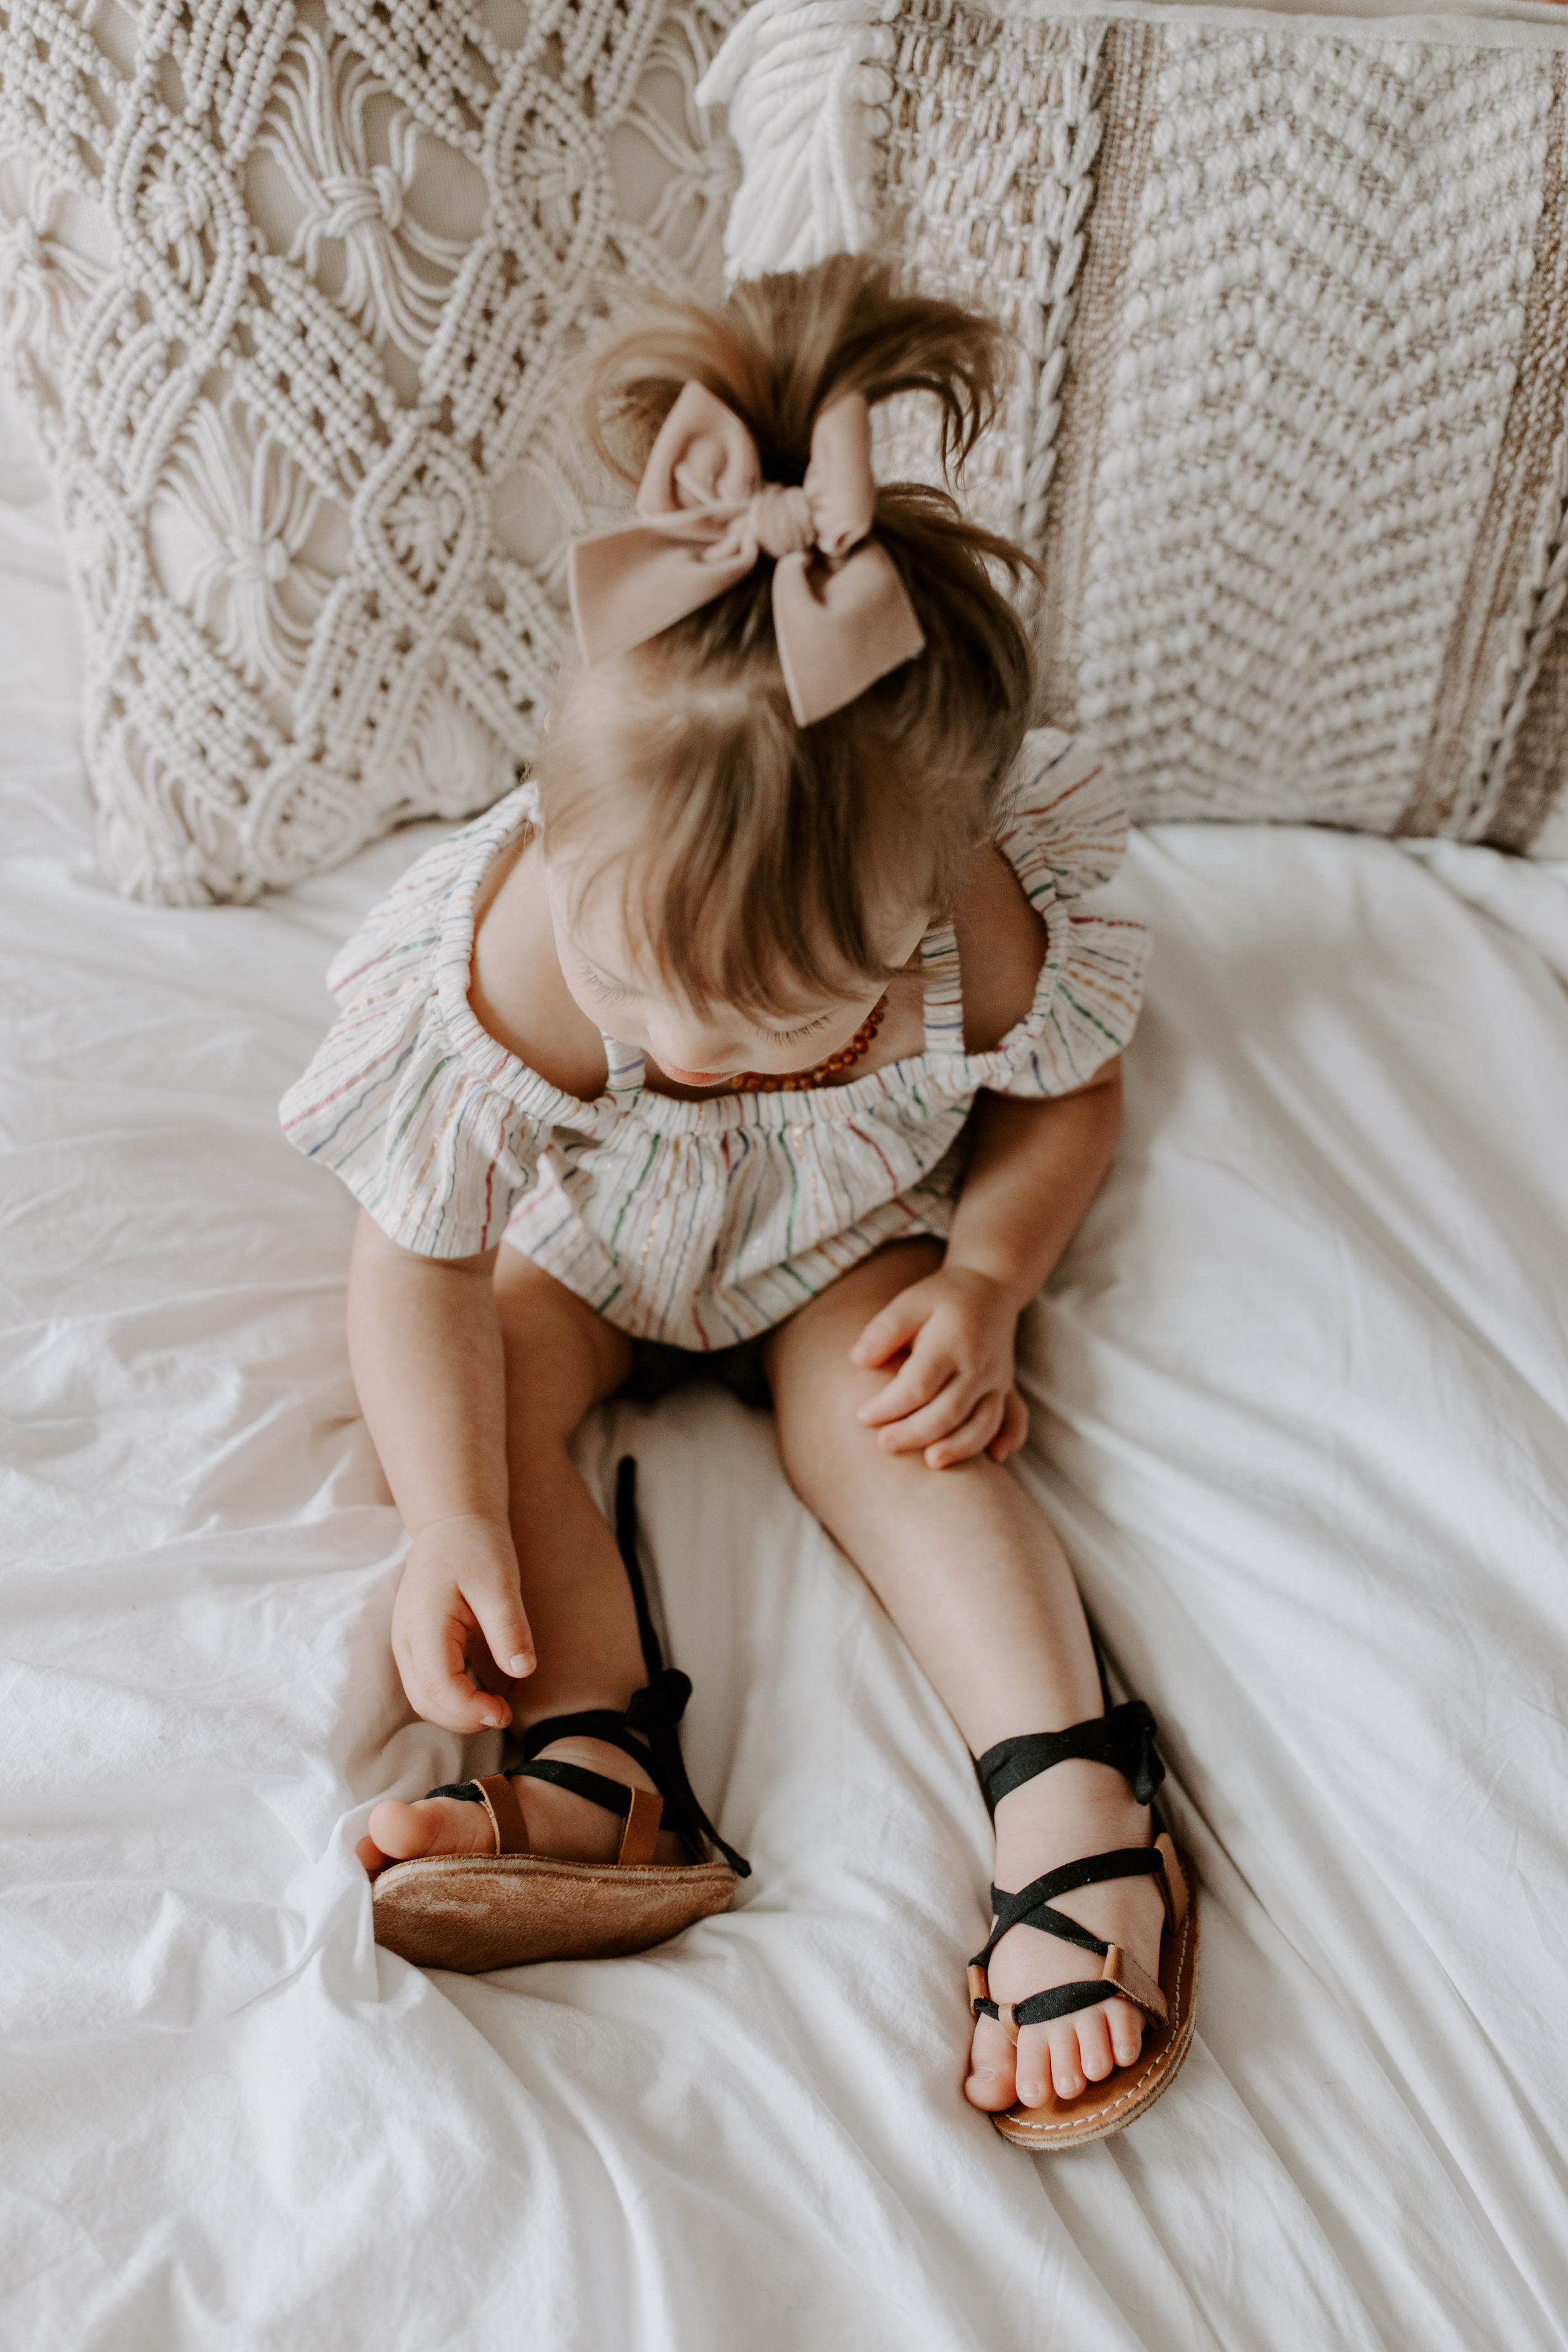 Back to the Product - Adaline's lace up sandals were a big hit and I still get messages about them. So if you're wanting to custom make your own babe sandals or just spoil your self then this is for you!.